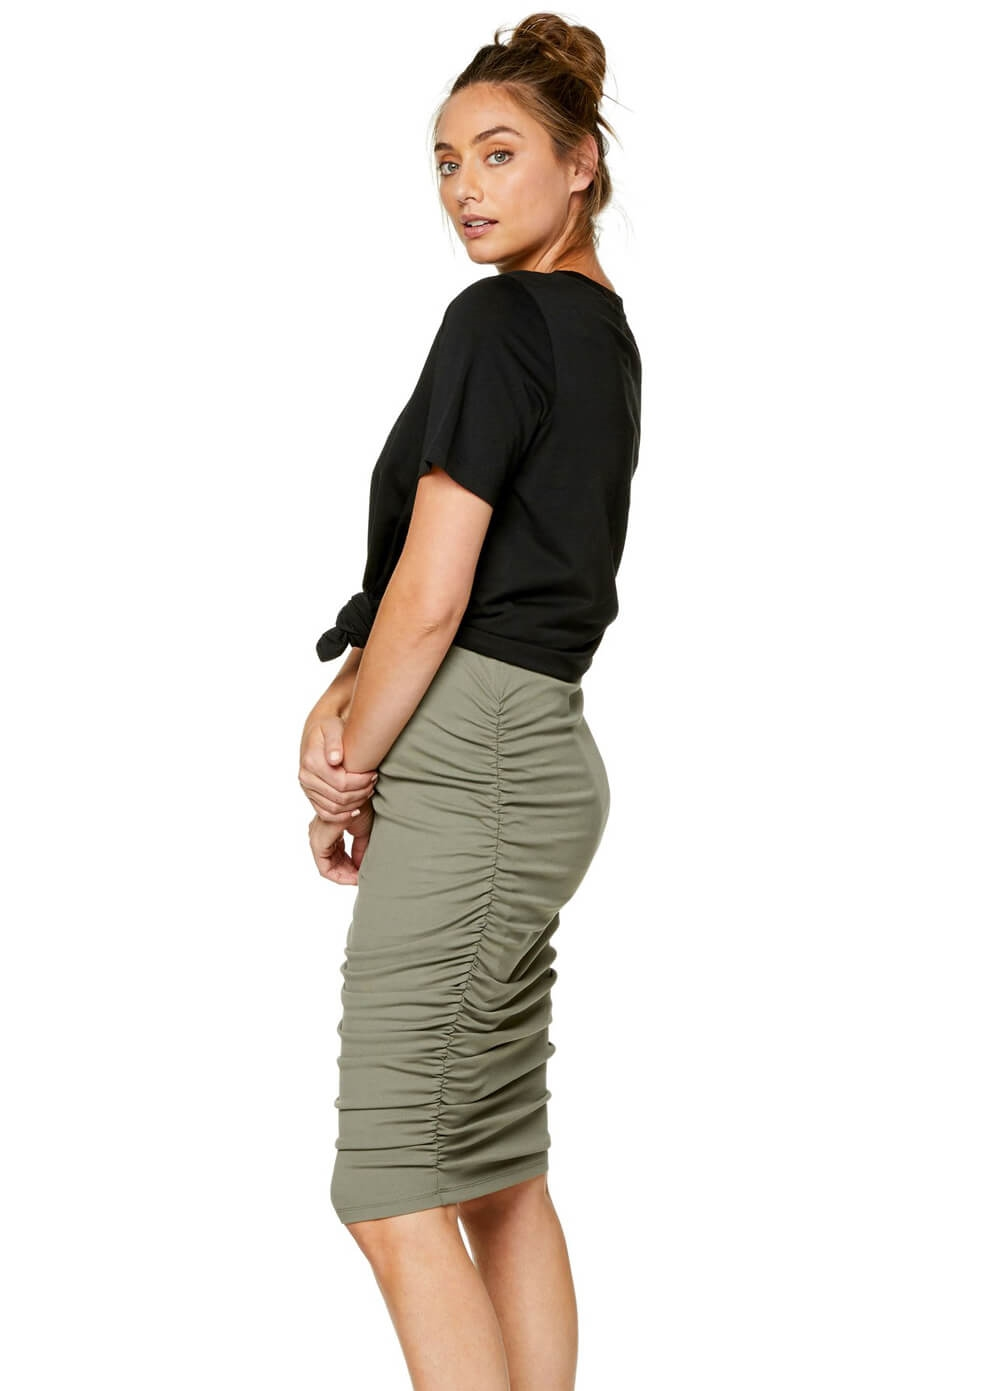 Bae - Count Your Blessings Maternity Skirt in Khaki | Queen Bee